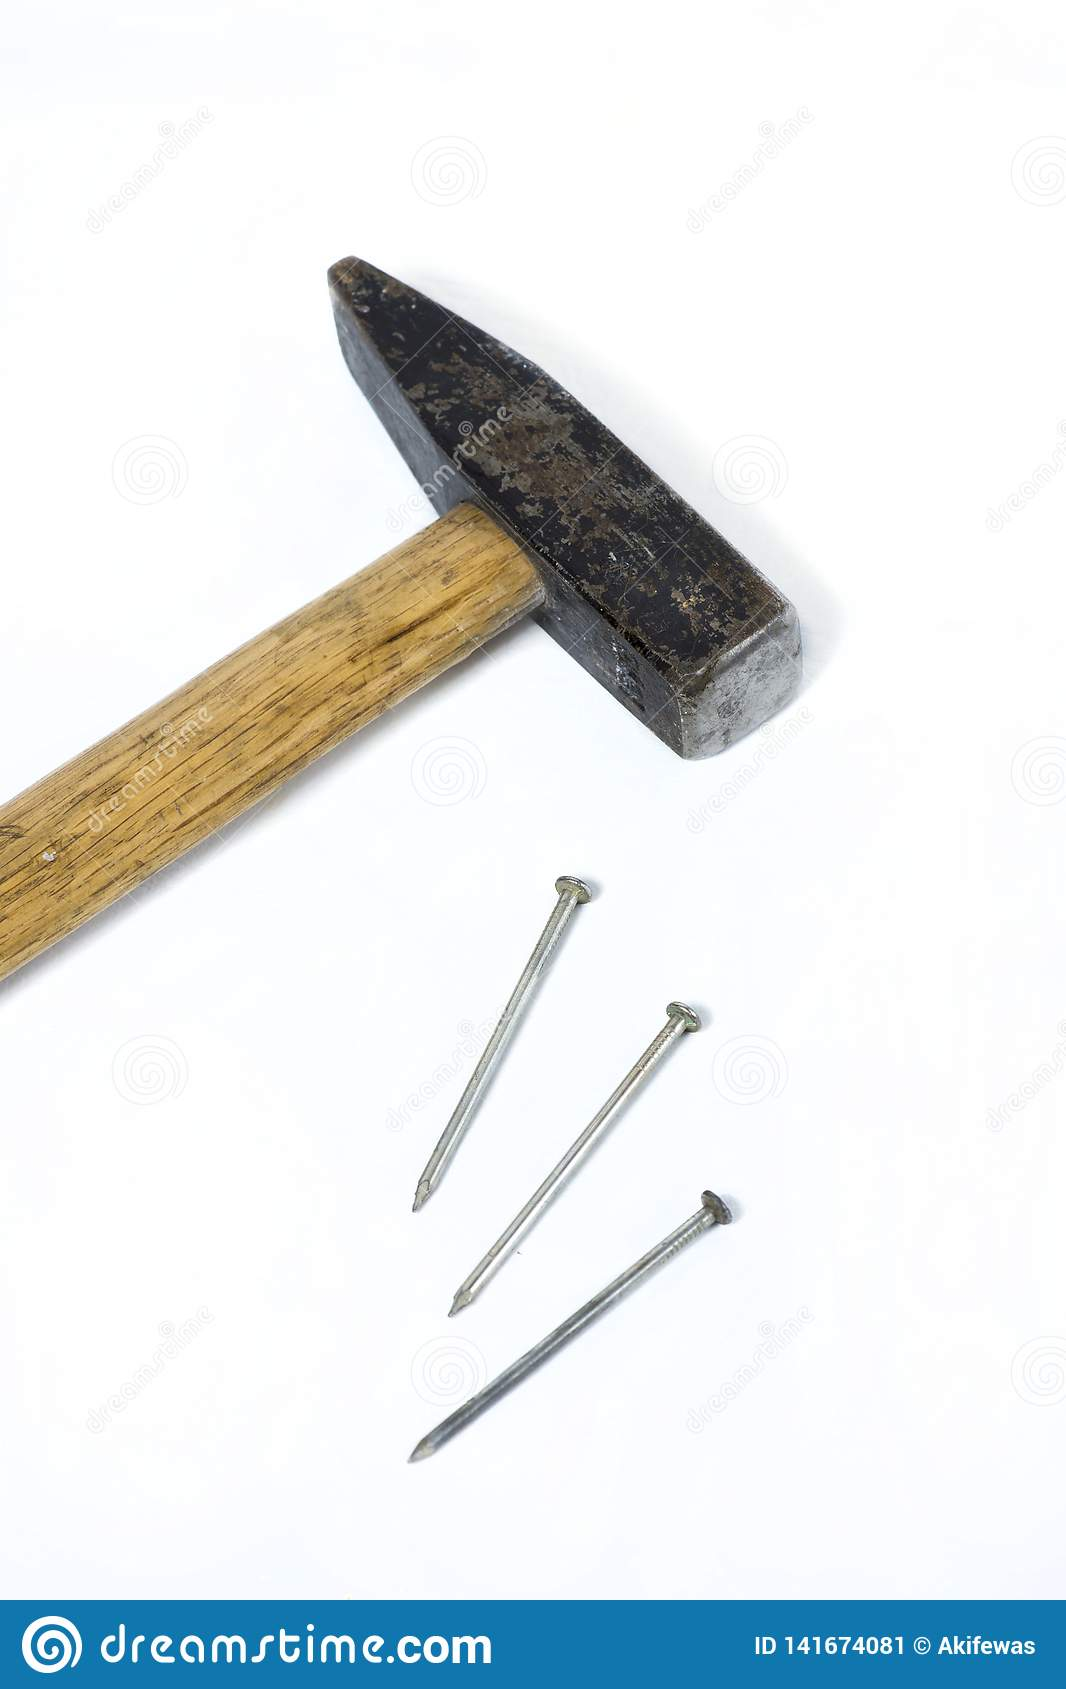 Iron hammer with wooden handle with nails on white background